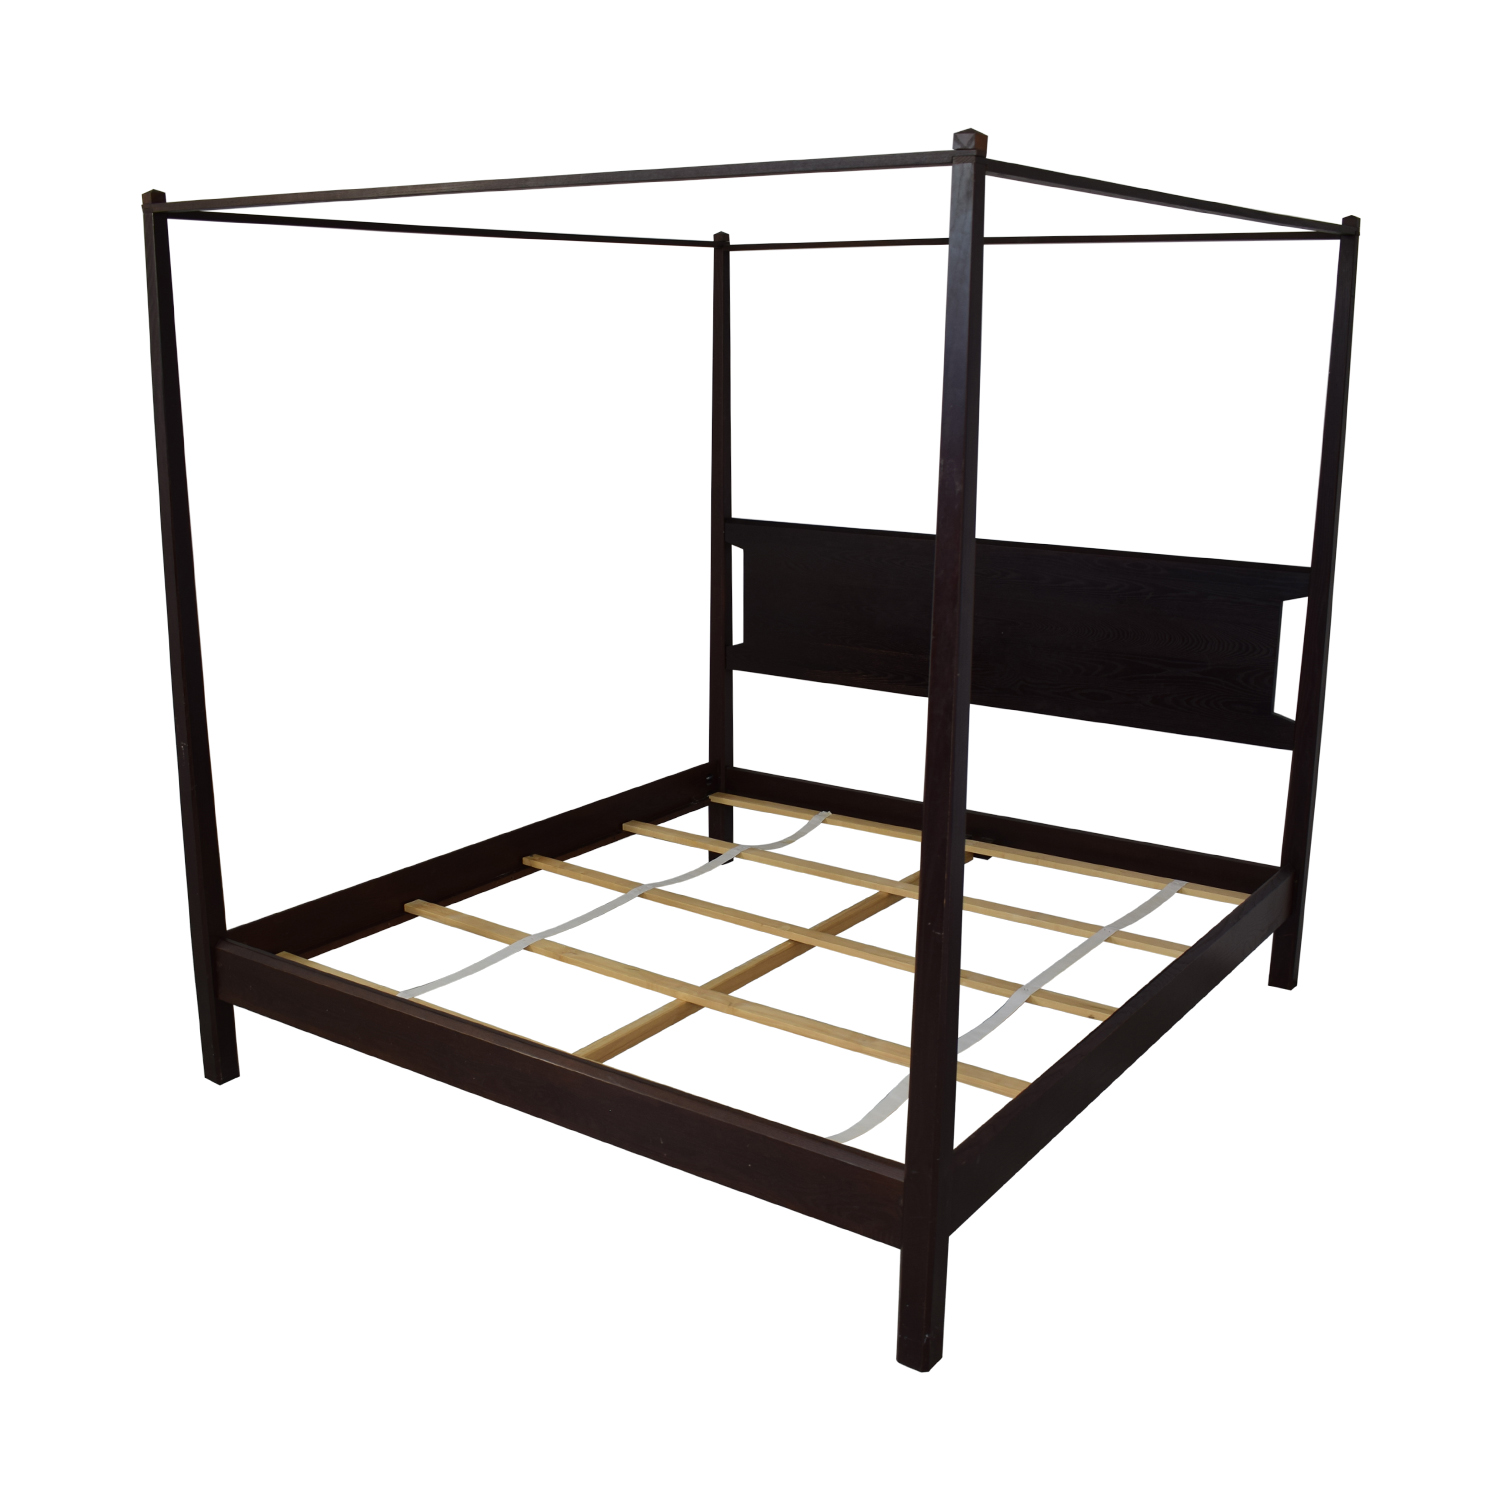 Bloomingdale's Bloomingdale's Canopy King Size Bed with Headboard for sale